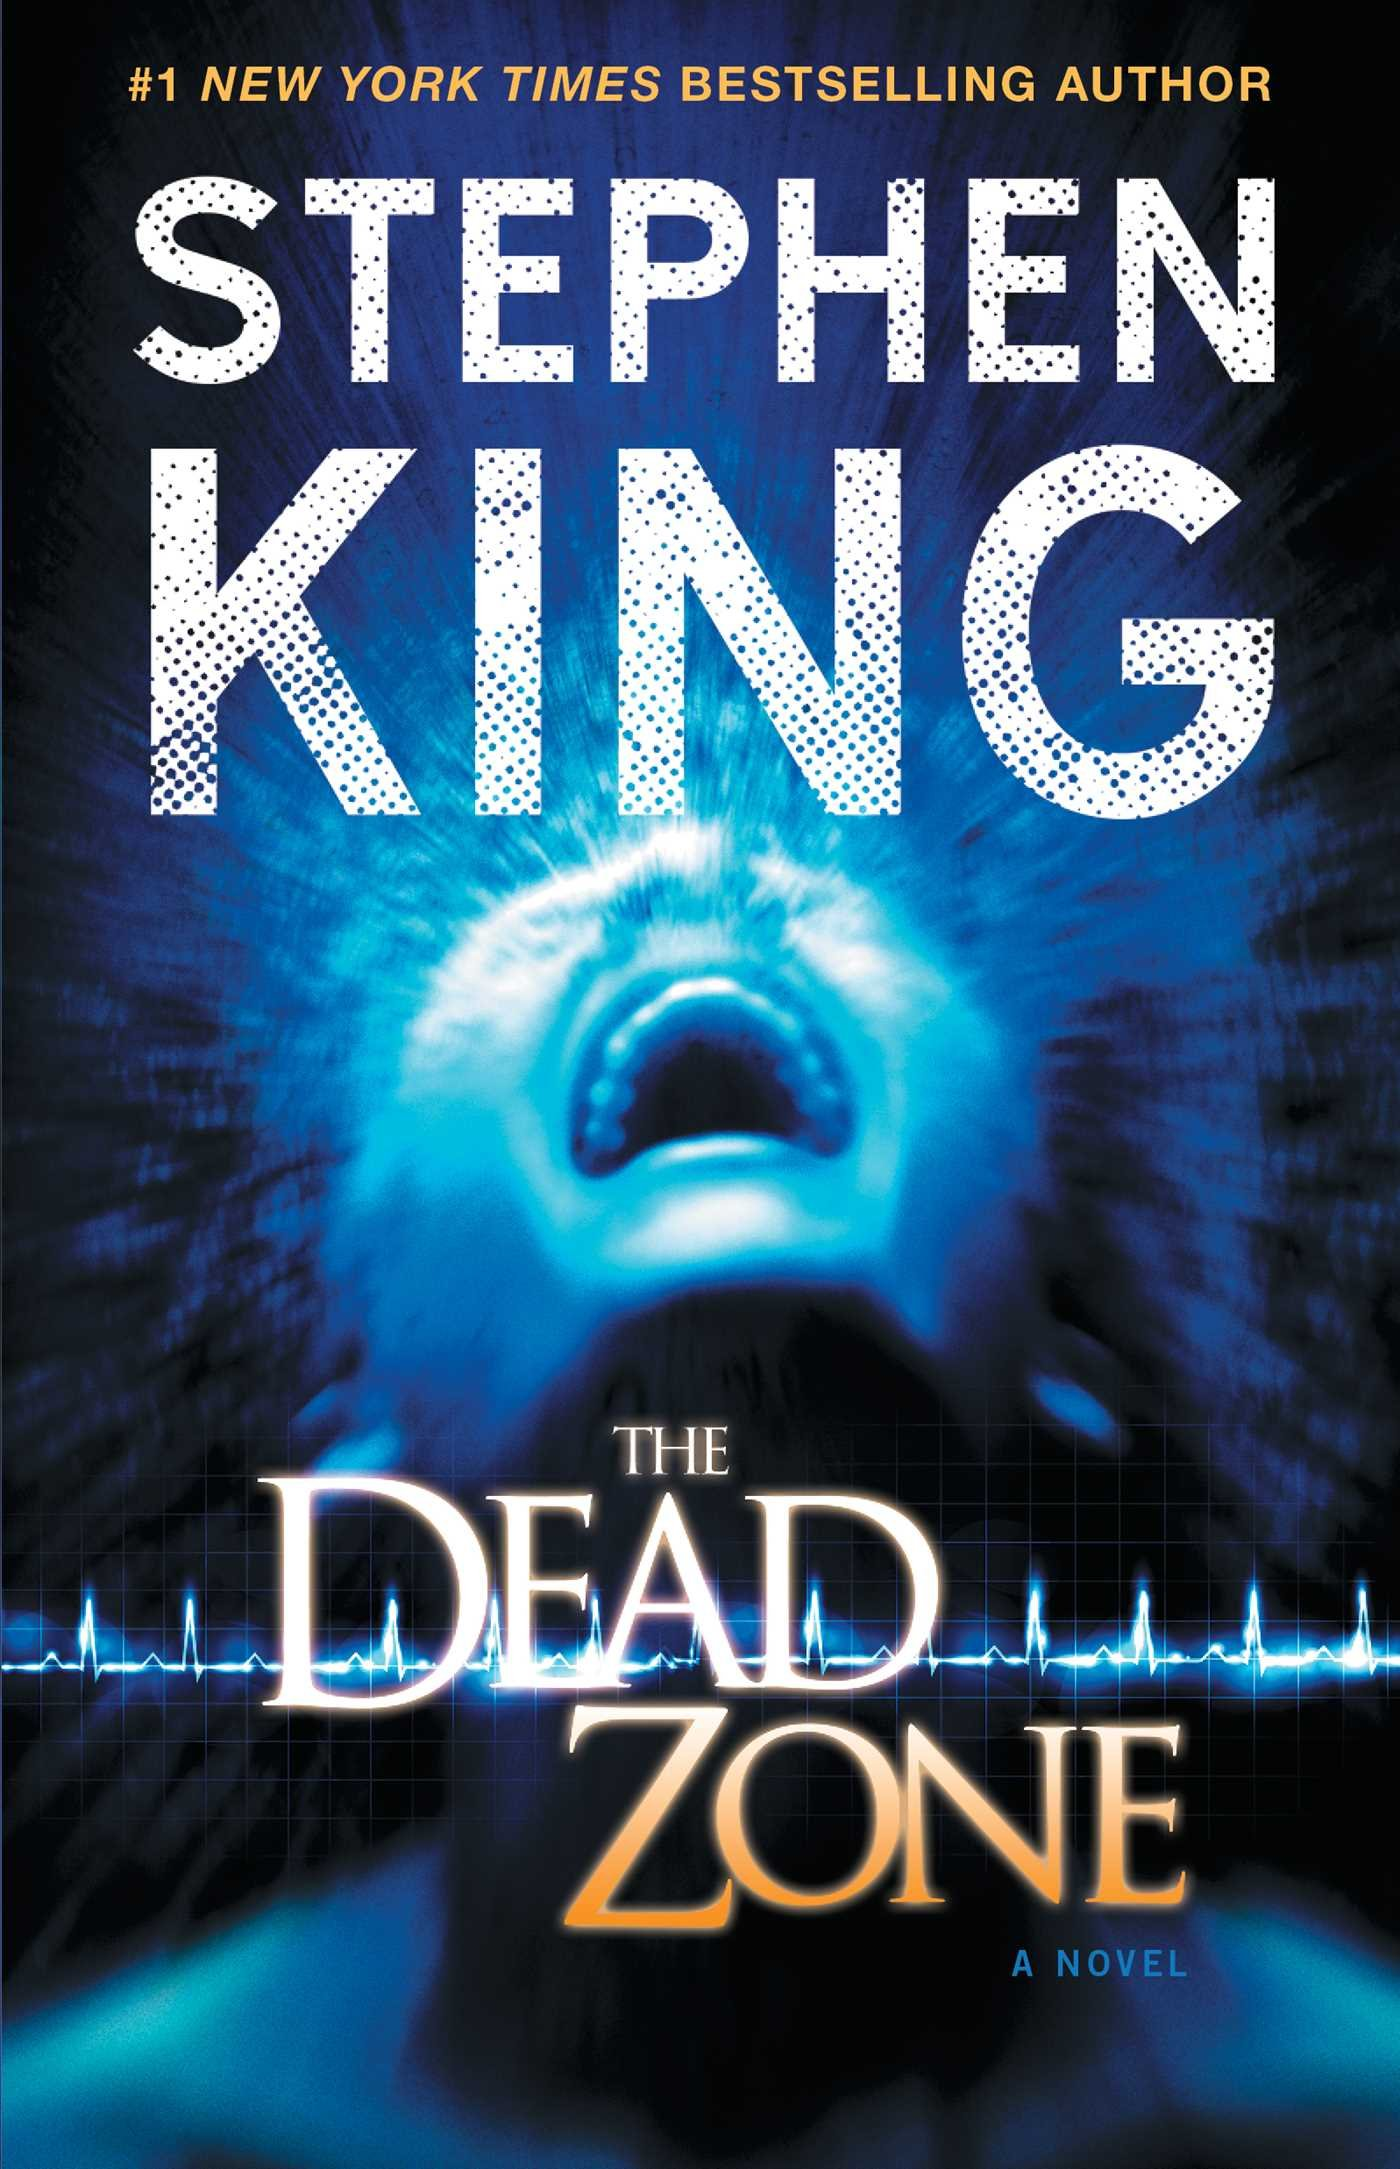 The rise of Donald Trump was predicted by Stephen King,